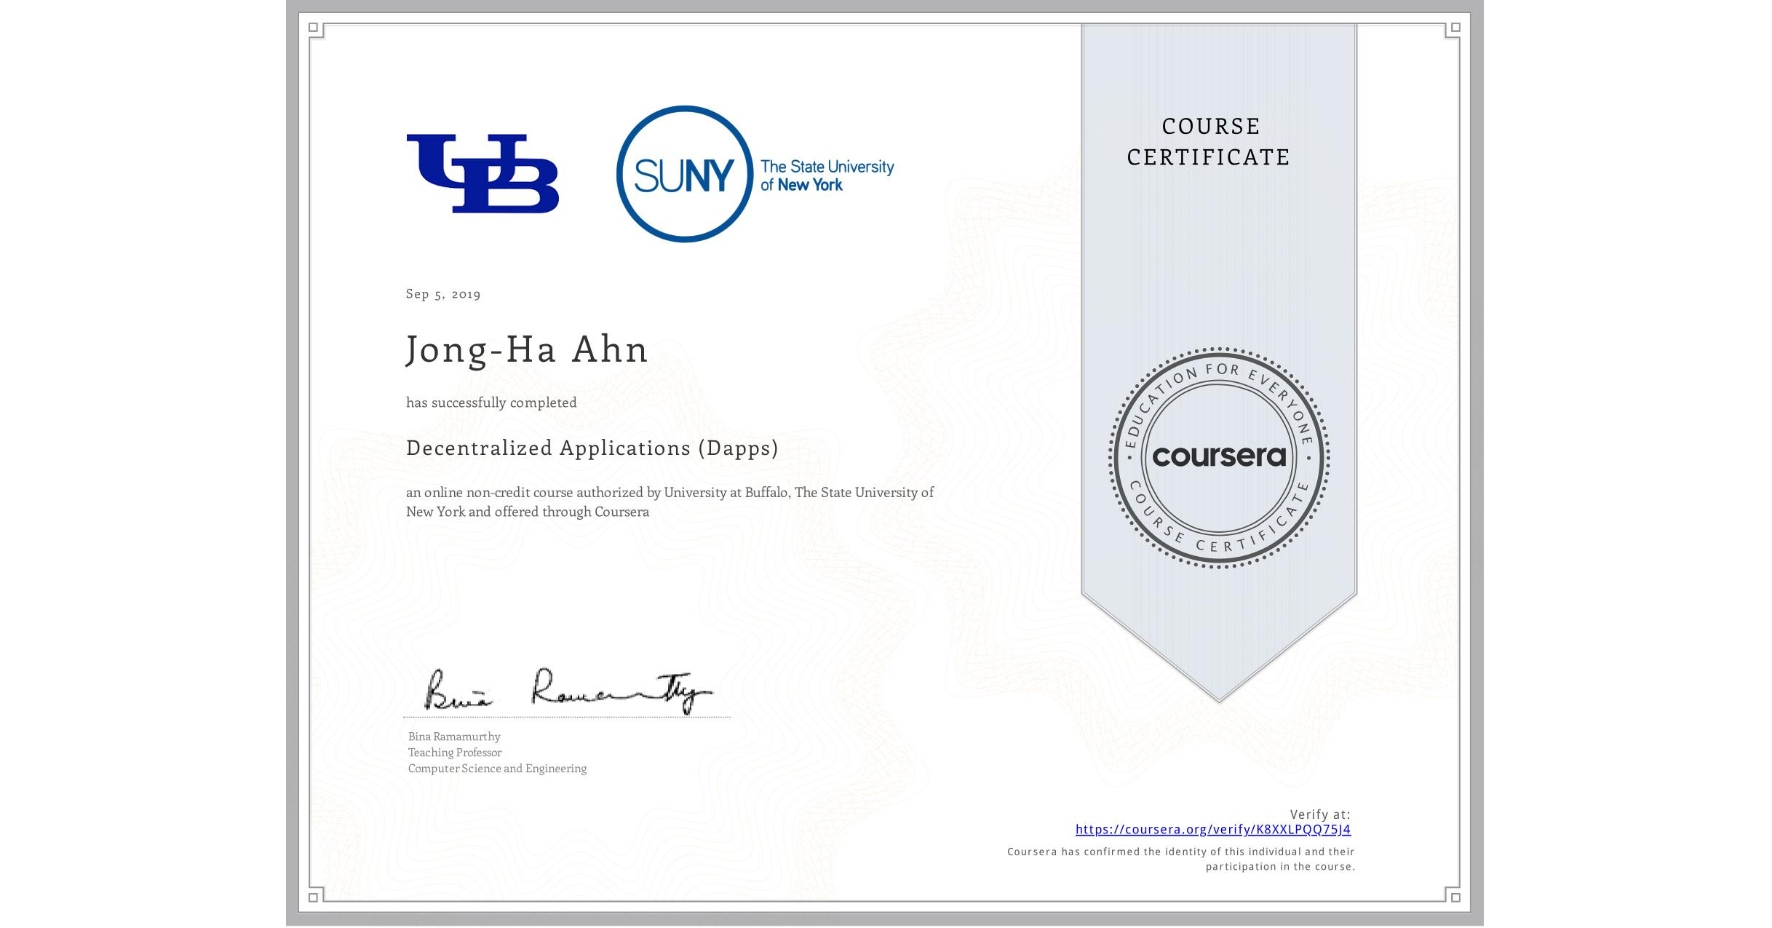 View certificate for Jong-Ha Ahn, Decentralized Applications (Dapps), an online non-credit course authorized by University at Buffalo & The State University of New York and offered through Coursera